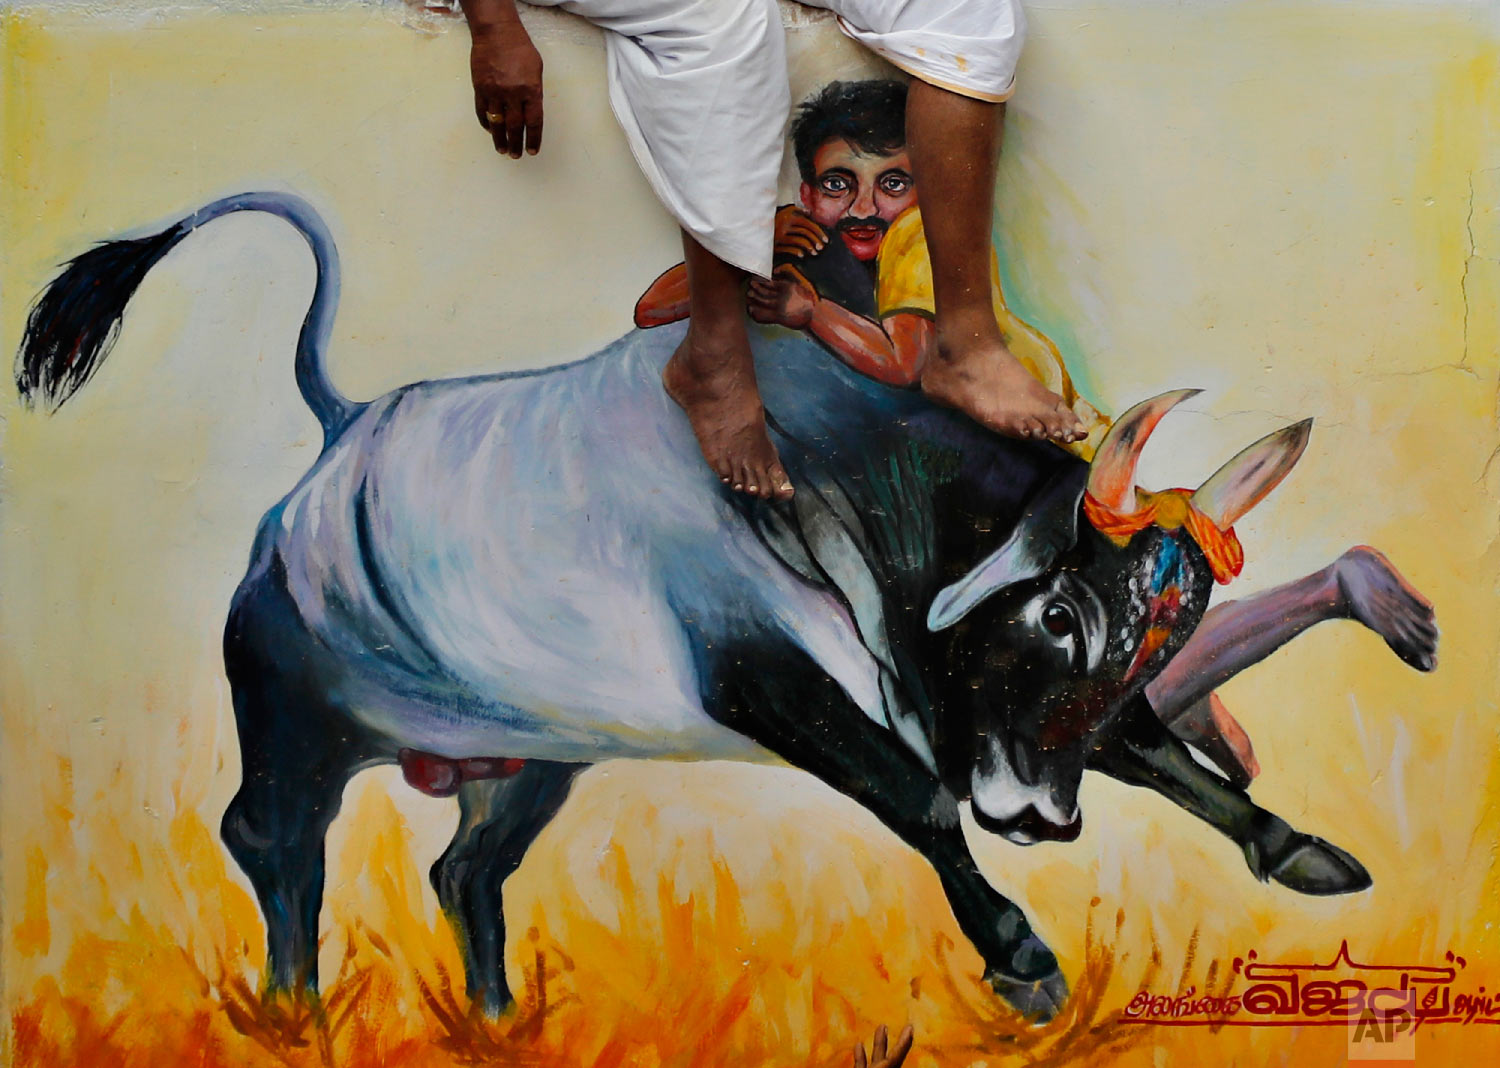 Legs of organizers dangle as they sit on a wall painted with a mural during a traditional bull-taming festival called Jallikattu, in the village of Allanganallur, near Madurai, Tamil Nadu state, India, Thursday, Jan. 17, 2019. (AP Photo/Aijaz Rahi)